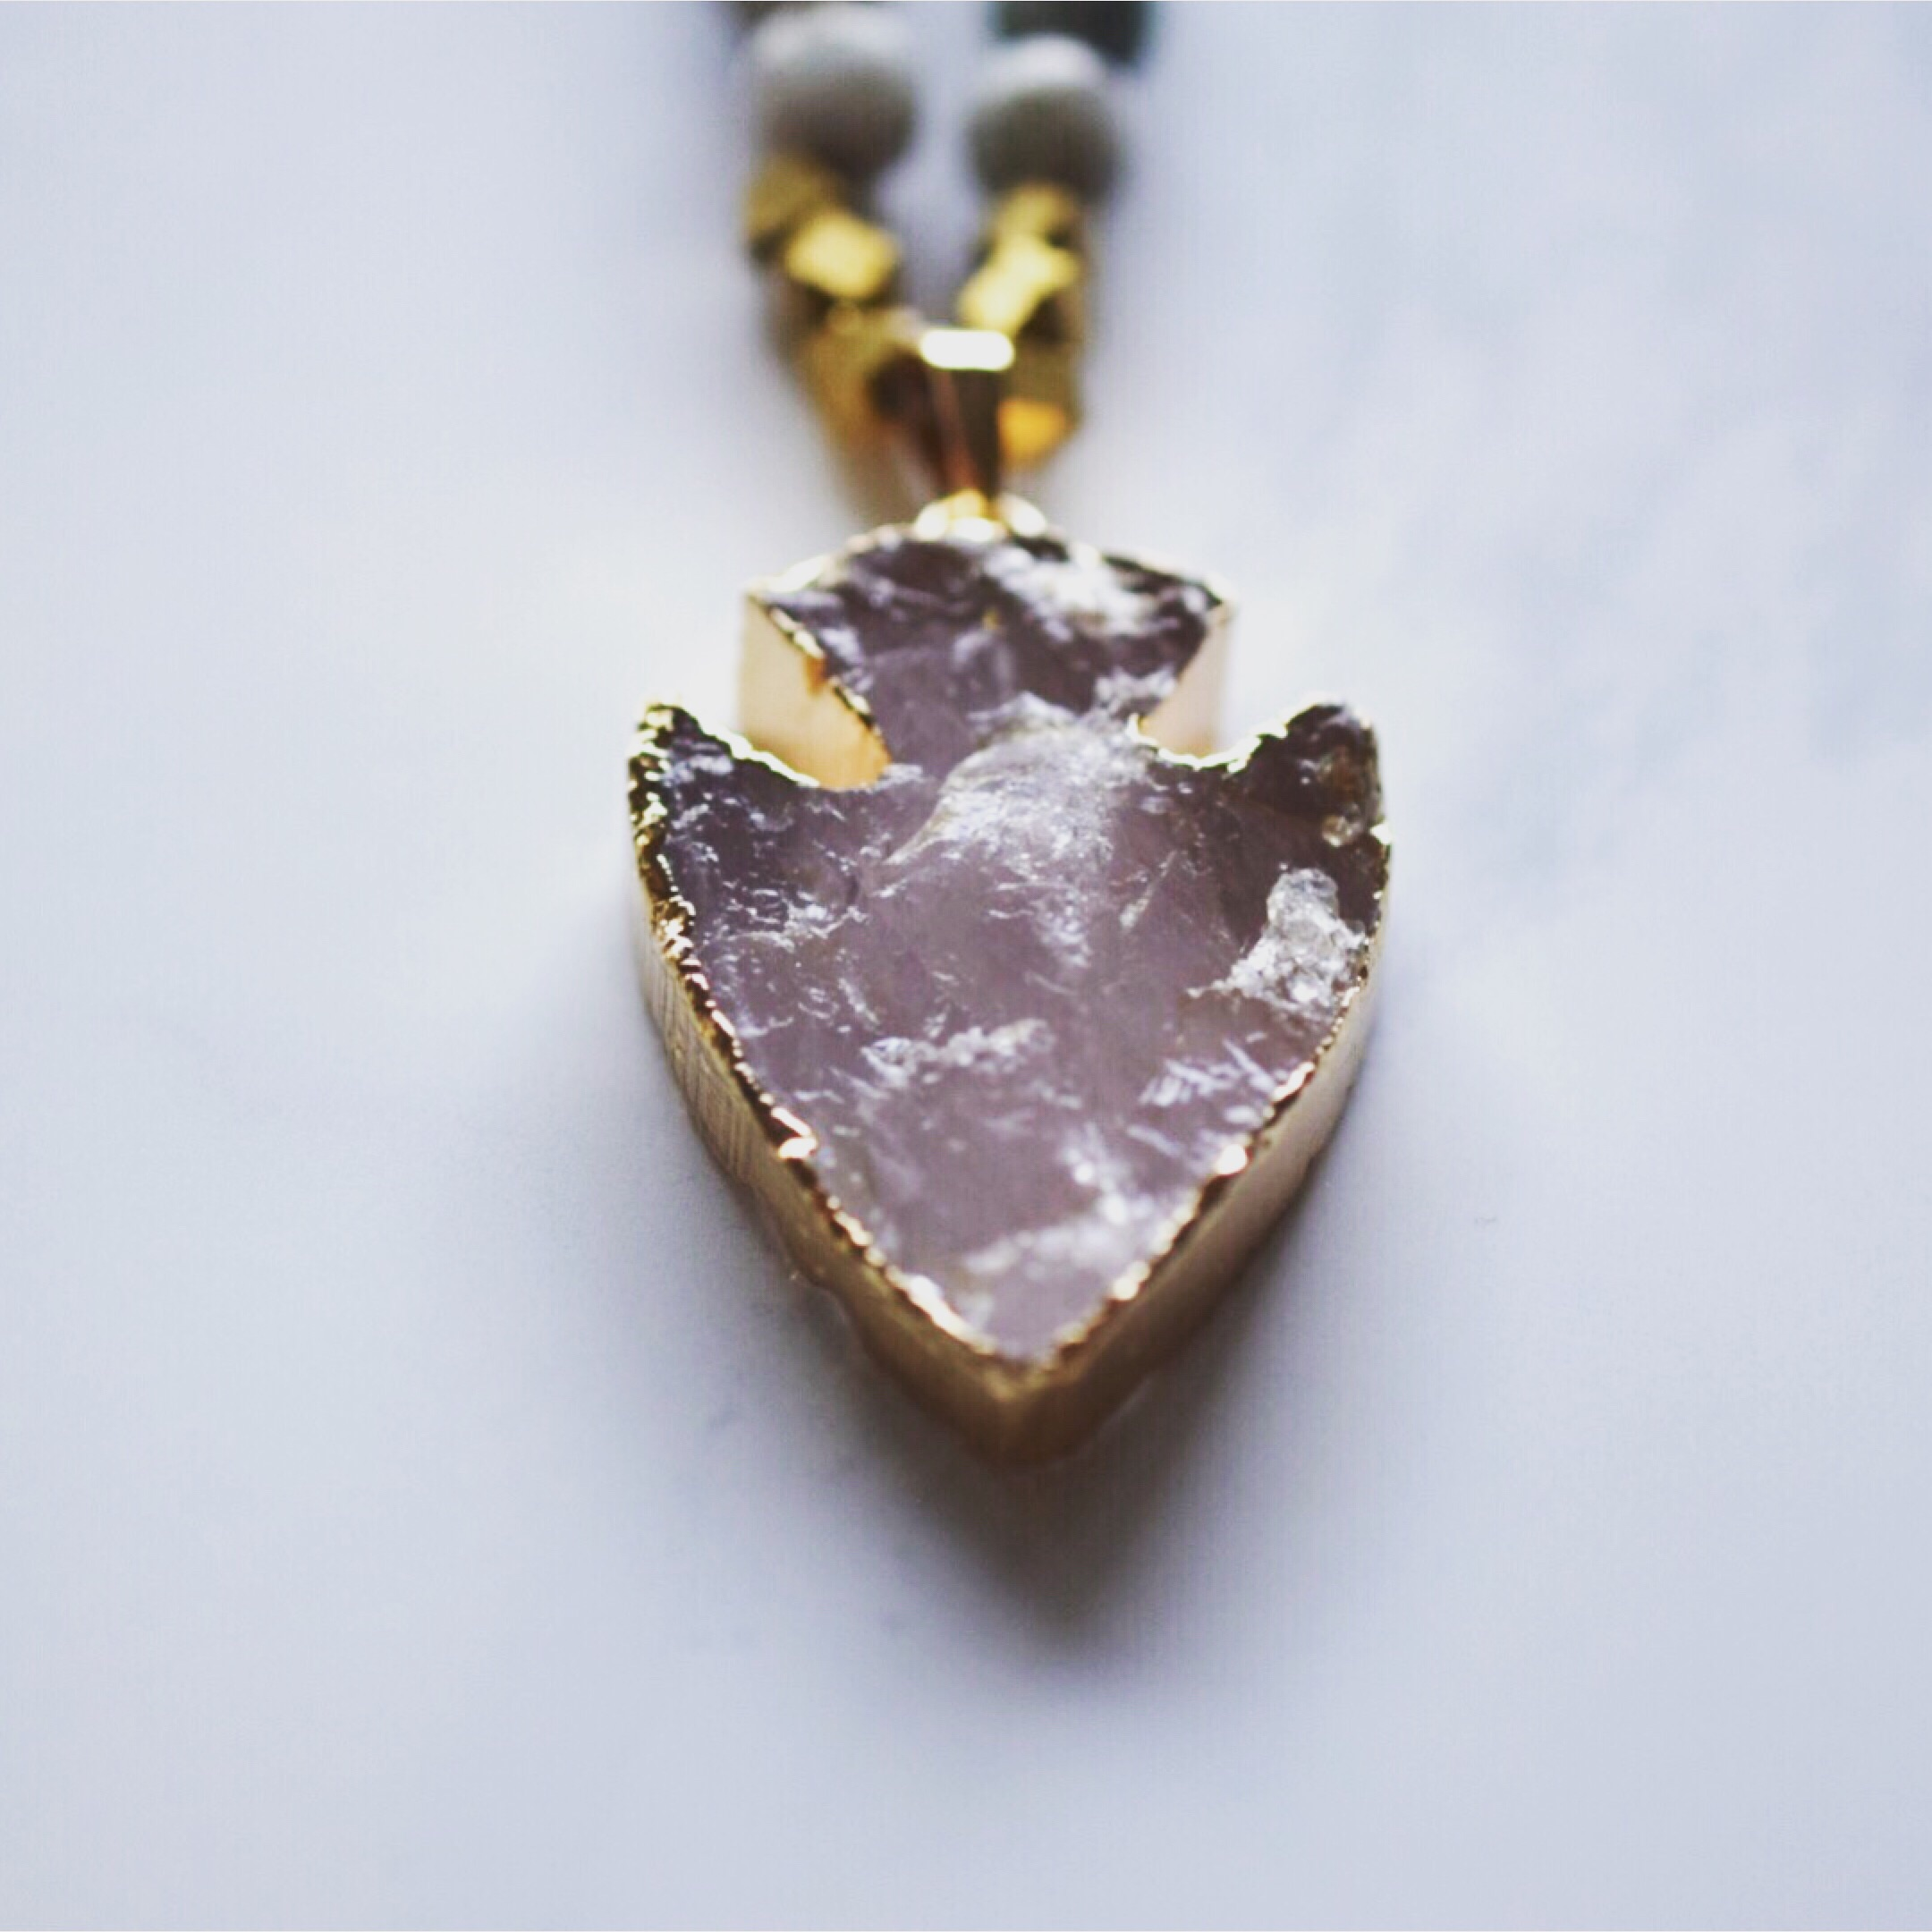 Beaded Jasper Necklace with Rose Quartz Arrowhead, available  here